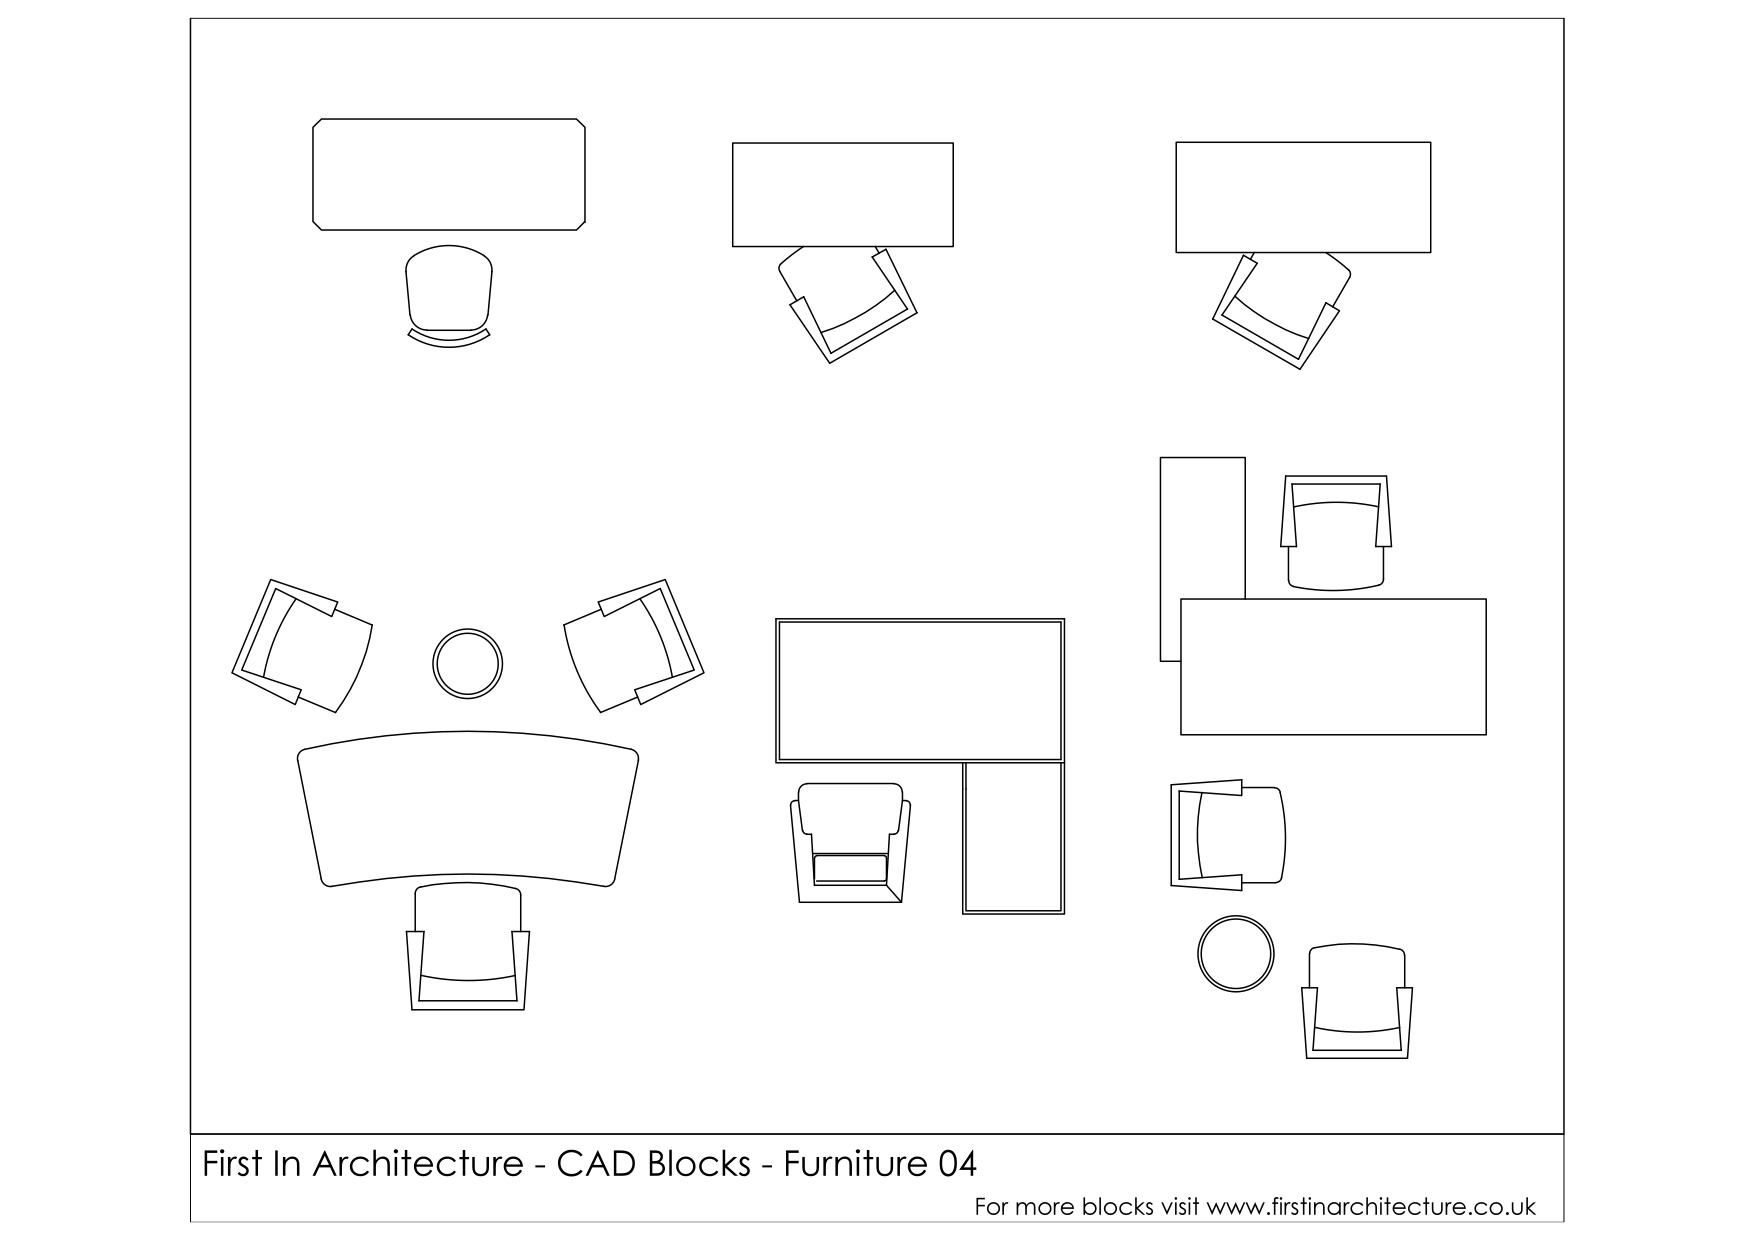 office chair cad block backpack with cooler free blocks furniture desks first in